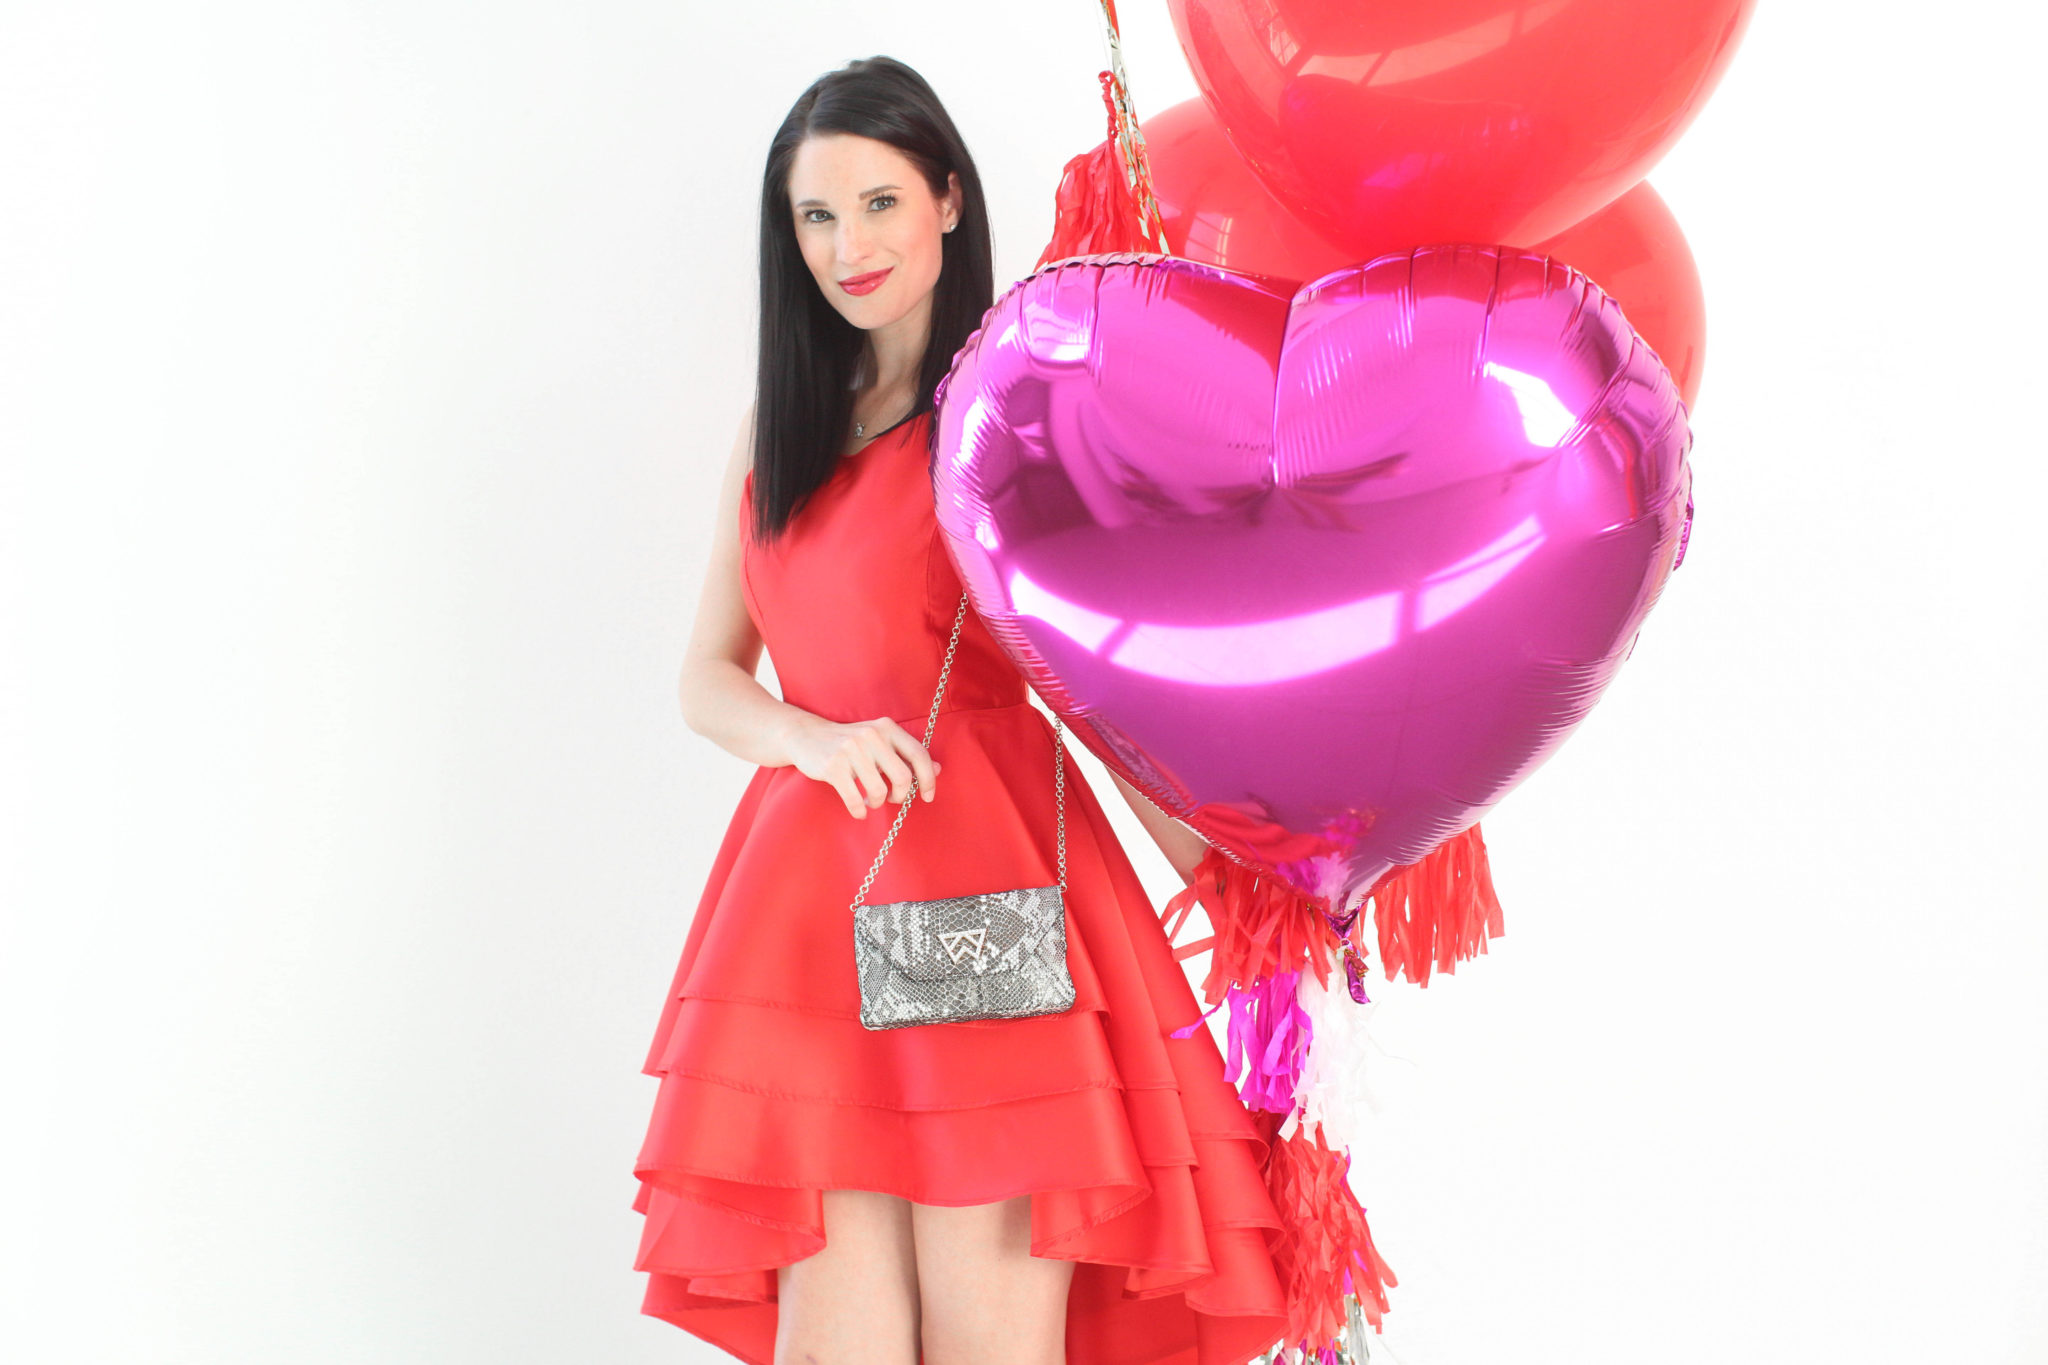 DTKAustin is sharing 12 little red dresses for Valentine's and Galentine's Day. - 12 Little Red Dresses for Galentine's Day by popular Austin fashion blogger Dressed to Kill